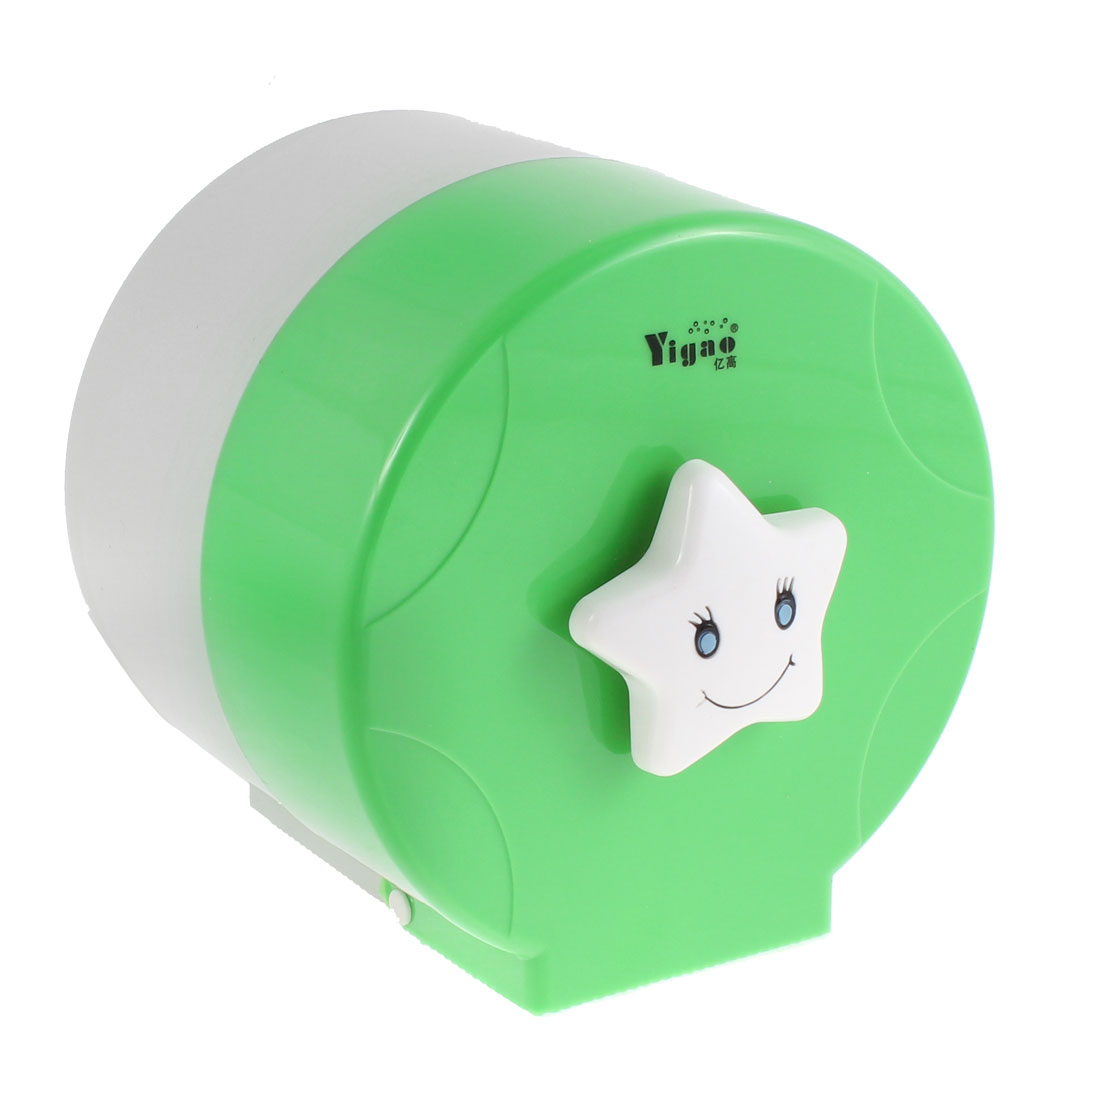 Plastic Cylindrical Design Toilet Paper Rack Tissue Holder Box Green